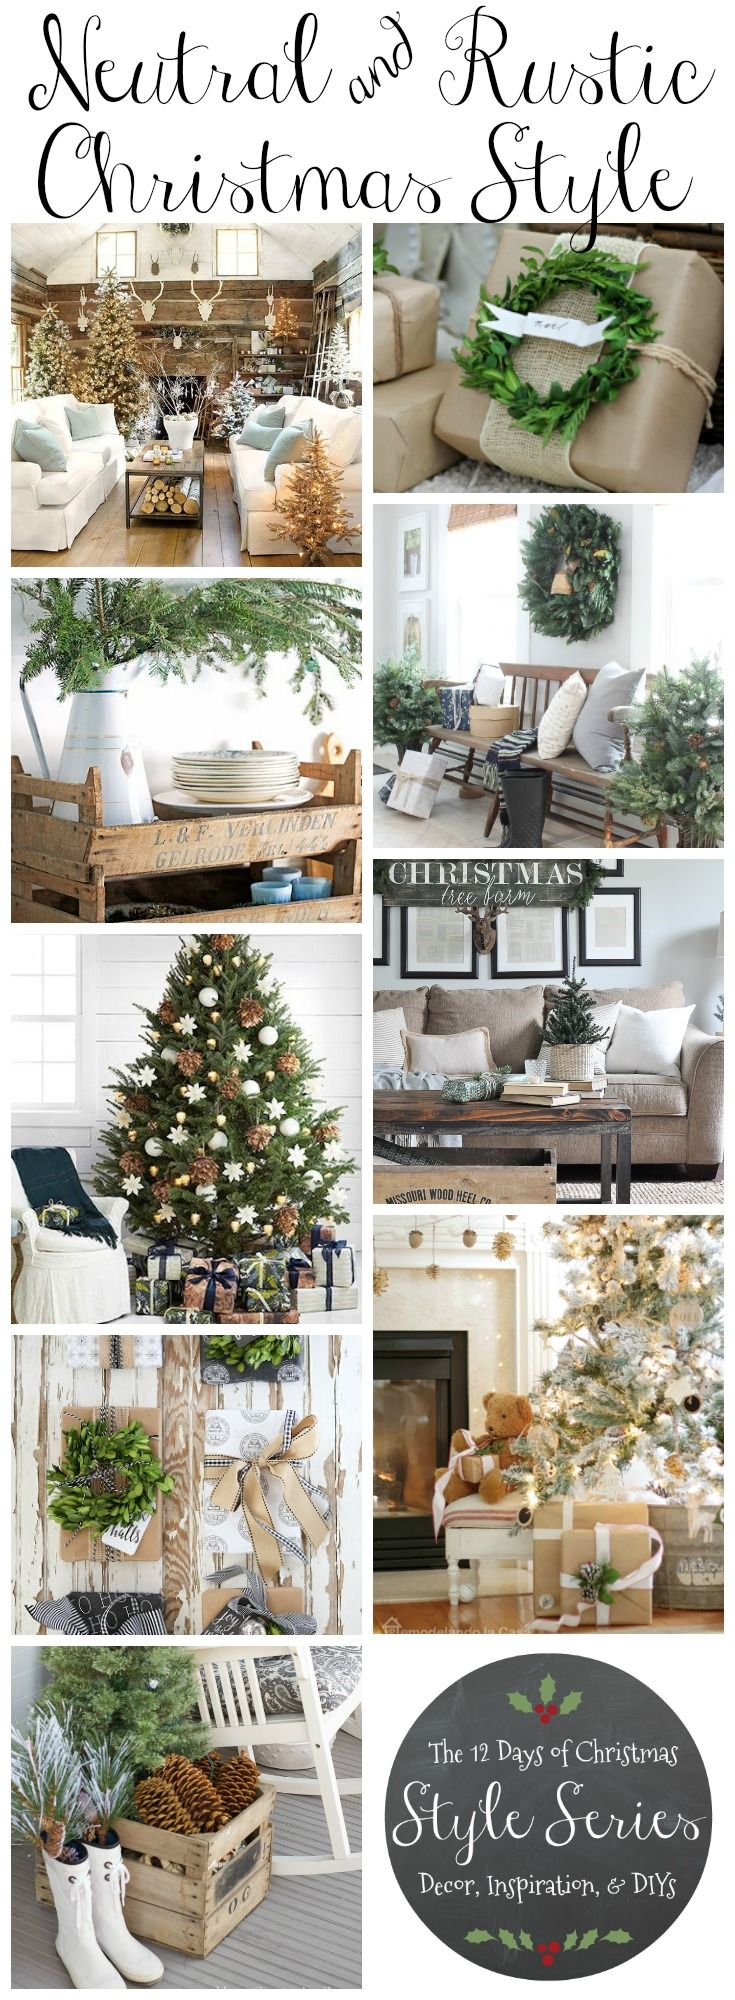 best 25+ rustic christmas decorations ideas on pinterest | country